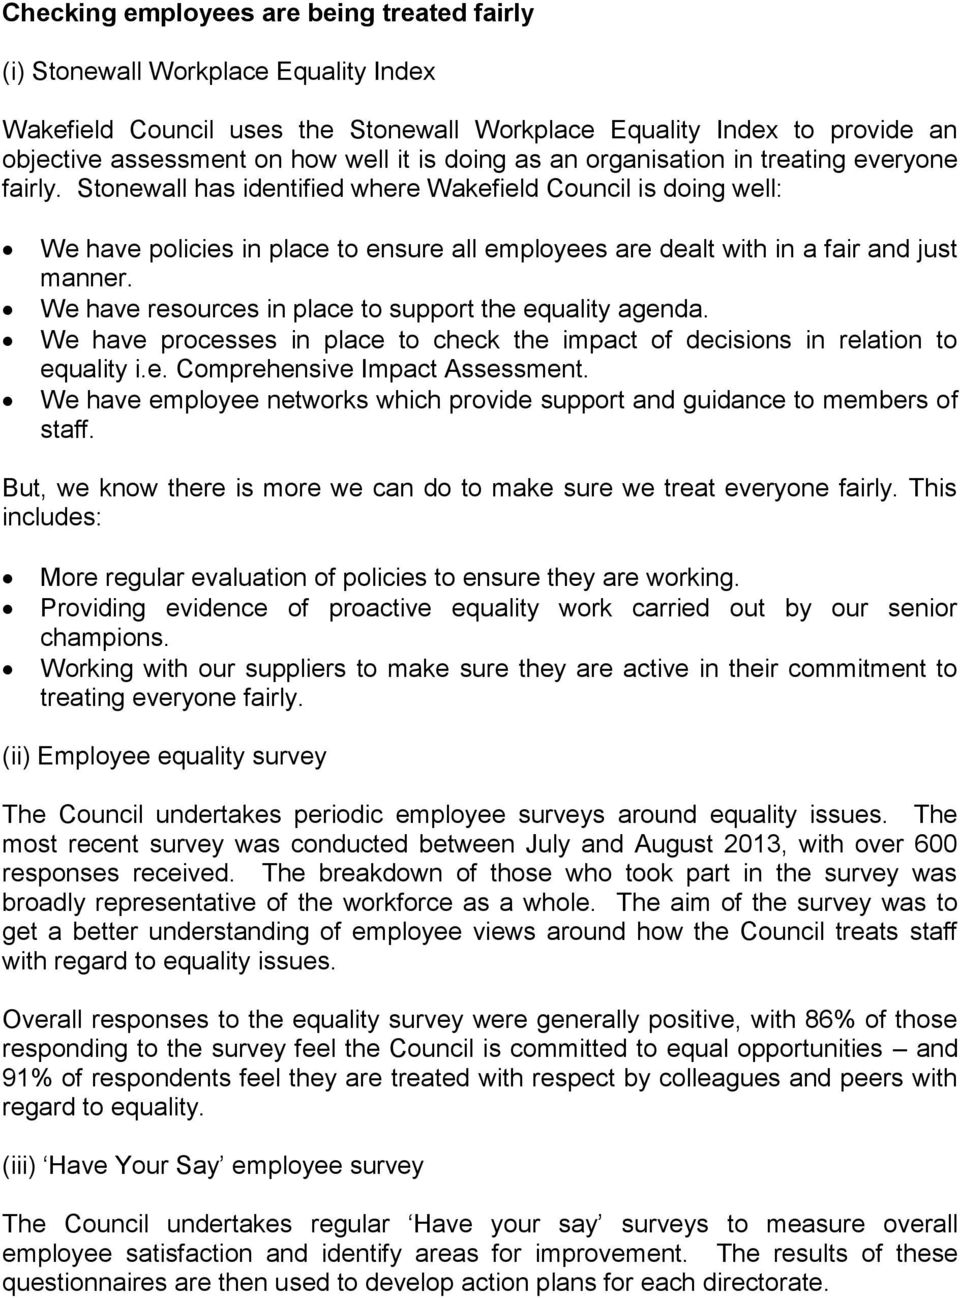 Stonewall has identified where Wakefield Council is doing well: We have policies in place to ensure all employees are dealt with in a fair and just manner.